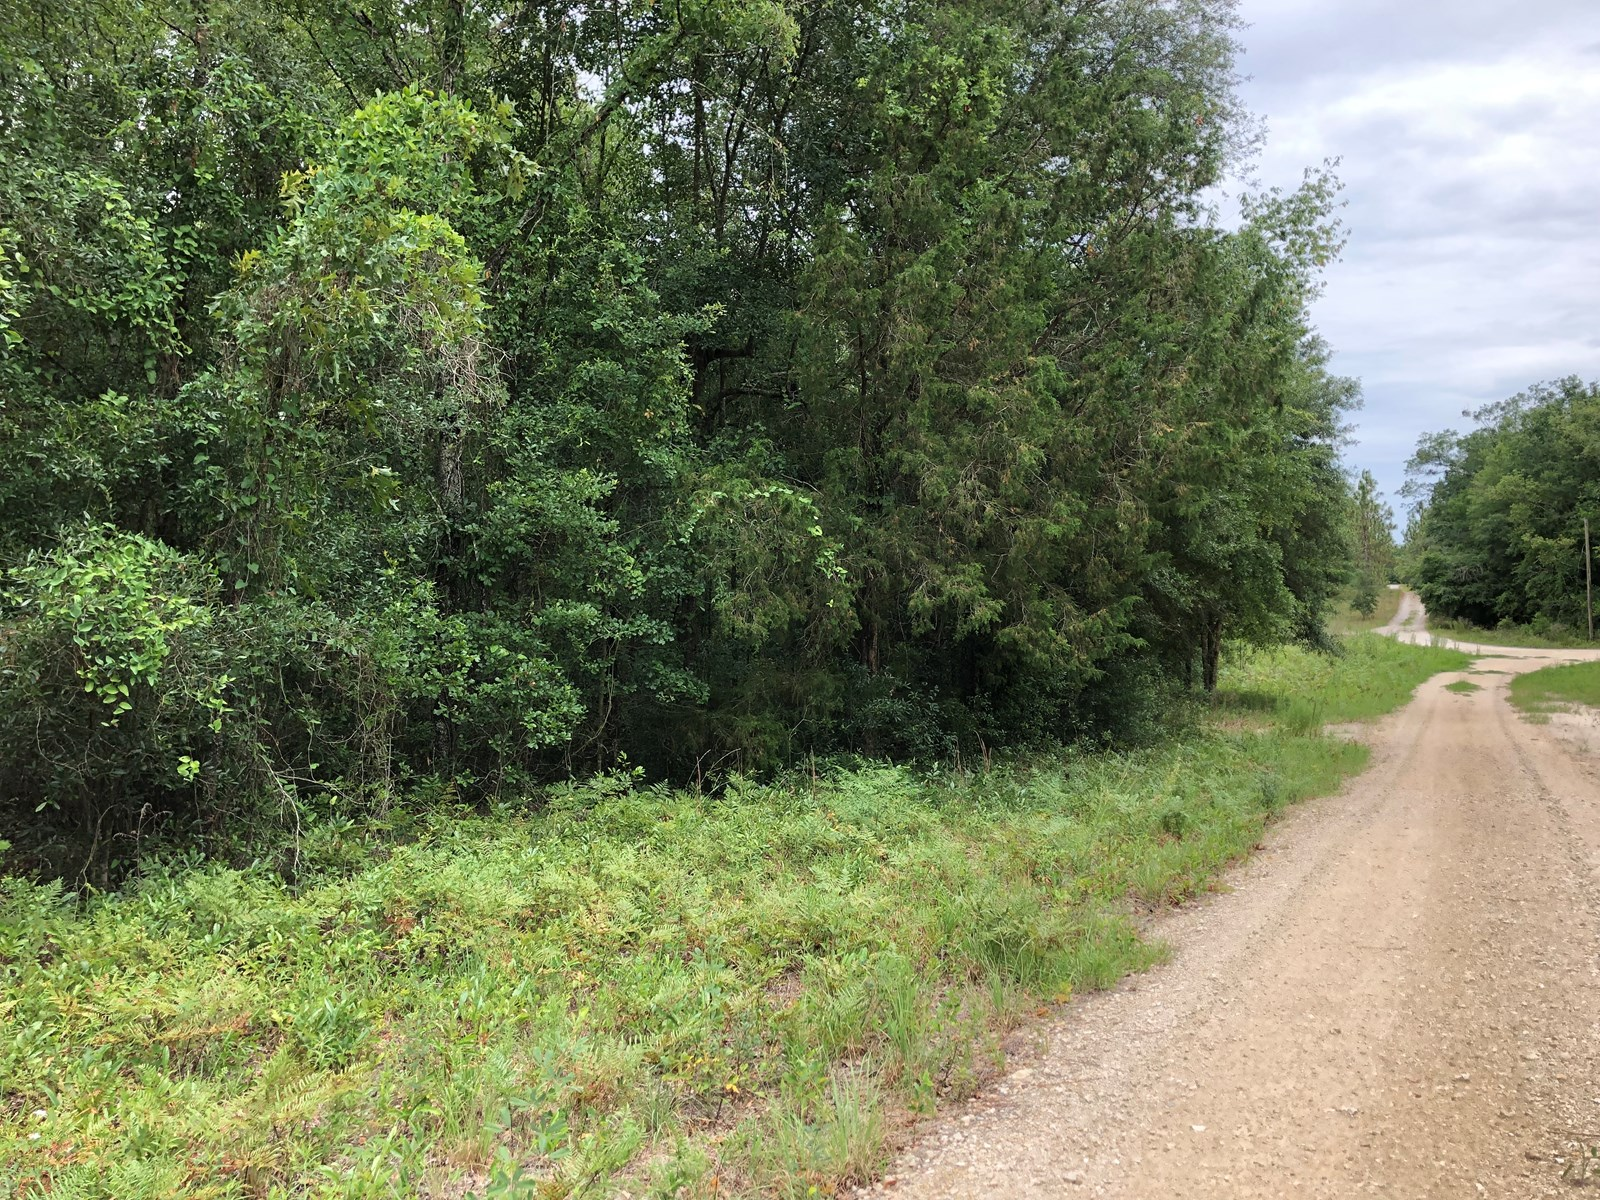 4.27 ACRES FOR SALE IN SUWANNEE COUNTY